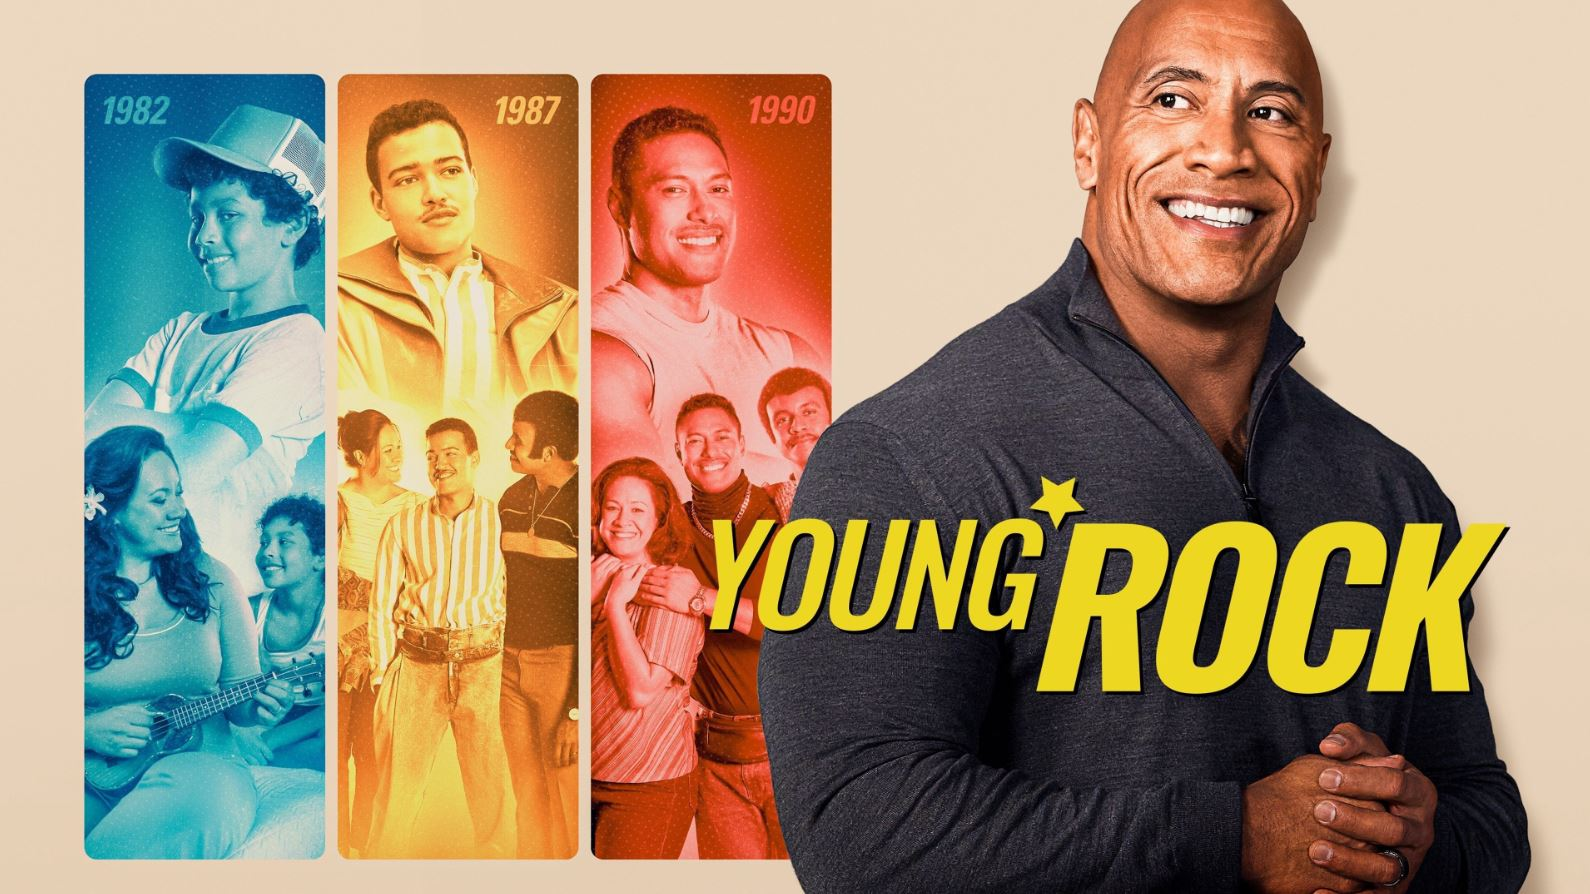 Preview And Recap: Young Rock Season 1 Episode 1